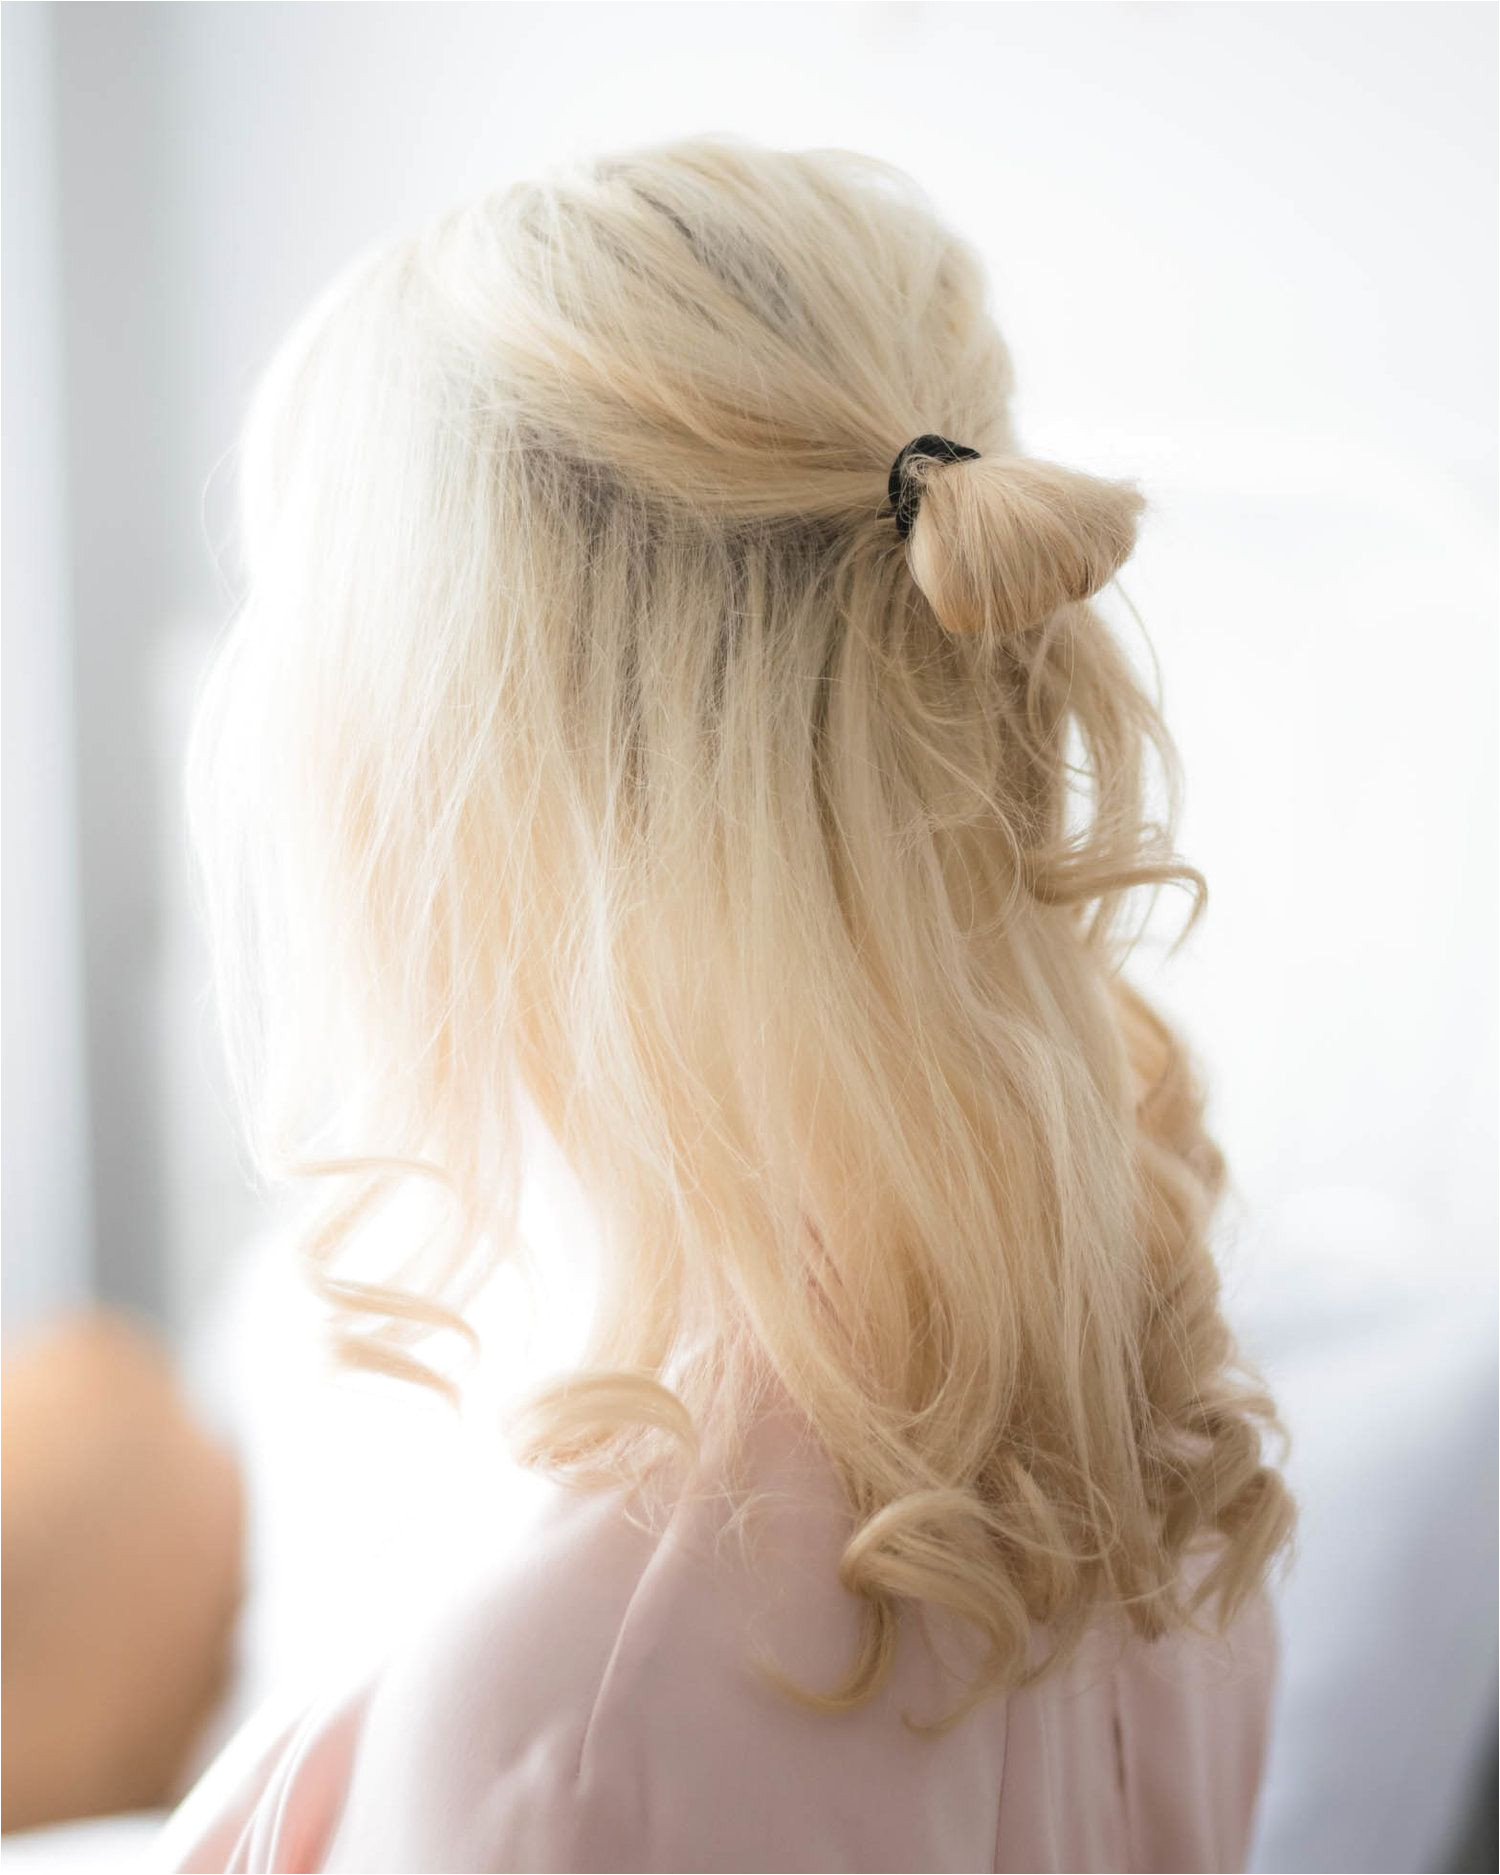 Save this pin and click through for more details 3 Easy Hairstyles You Can Do in Under 5 Minutes